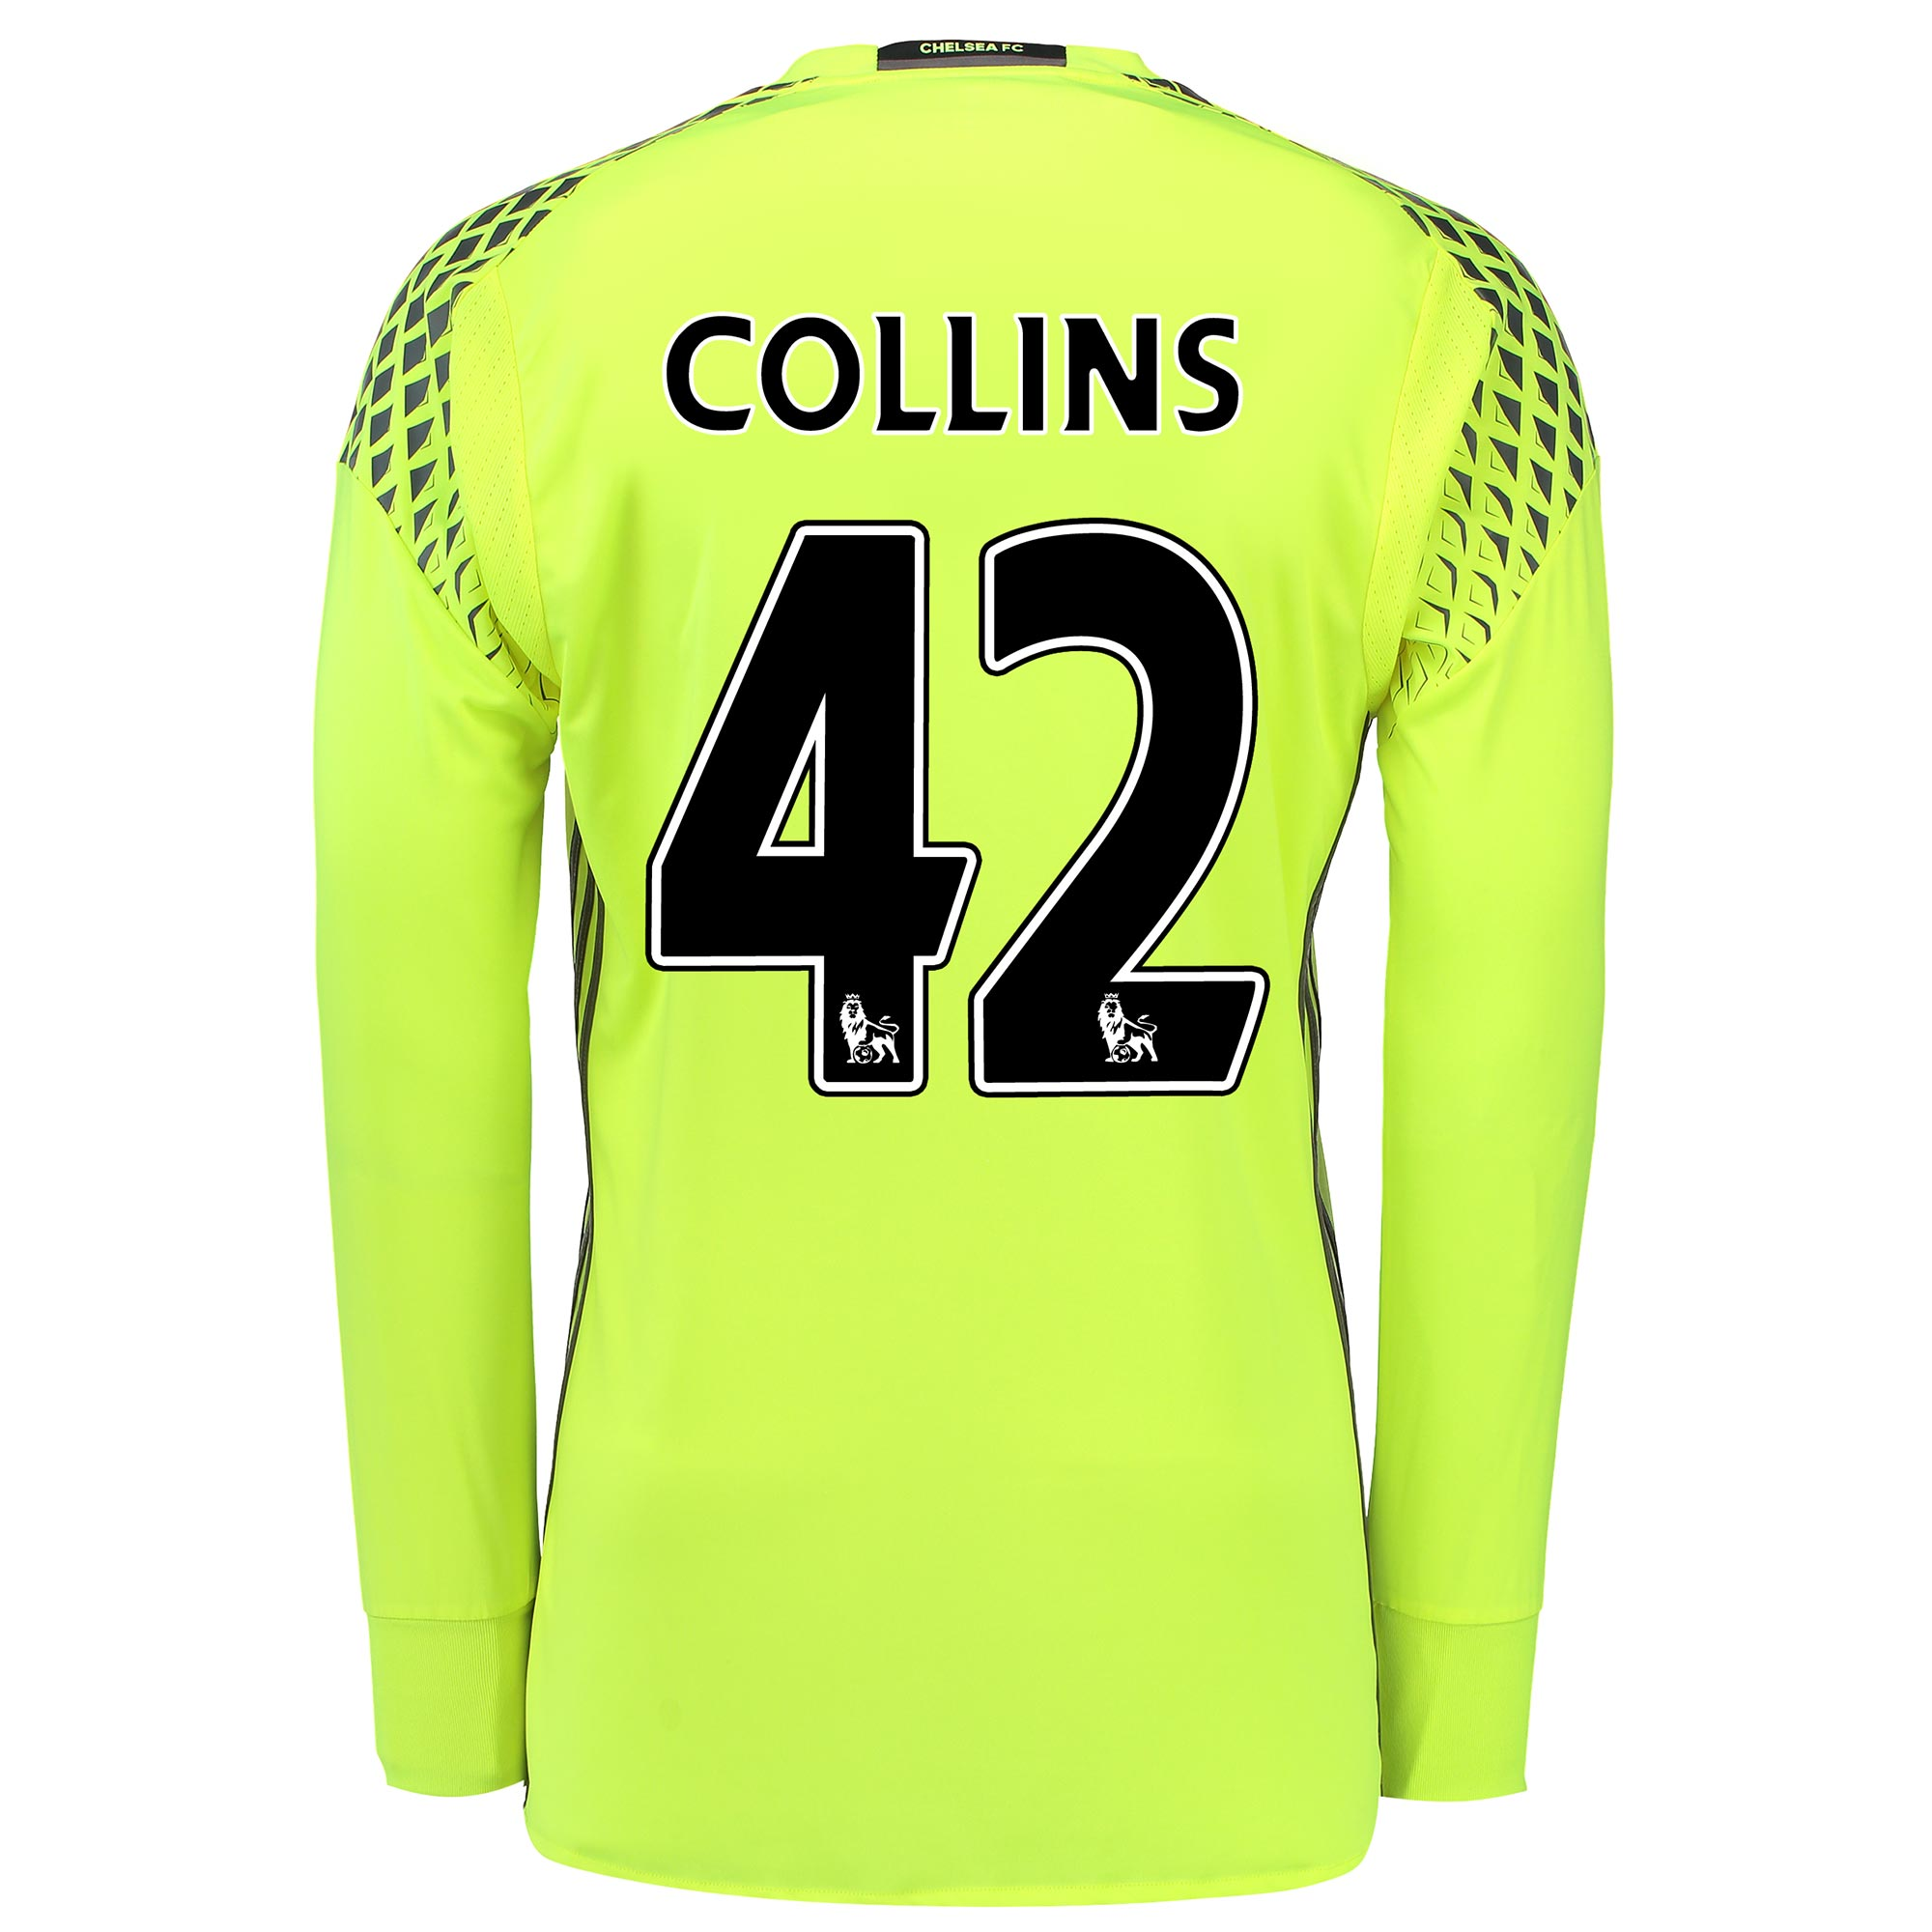 Shop Collins Printed Shirts